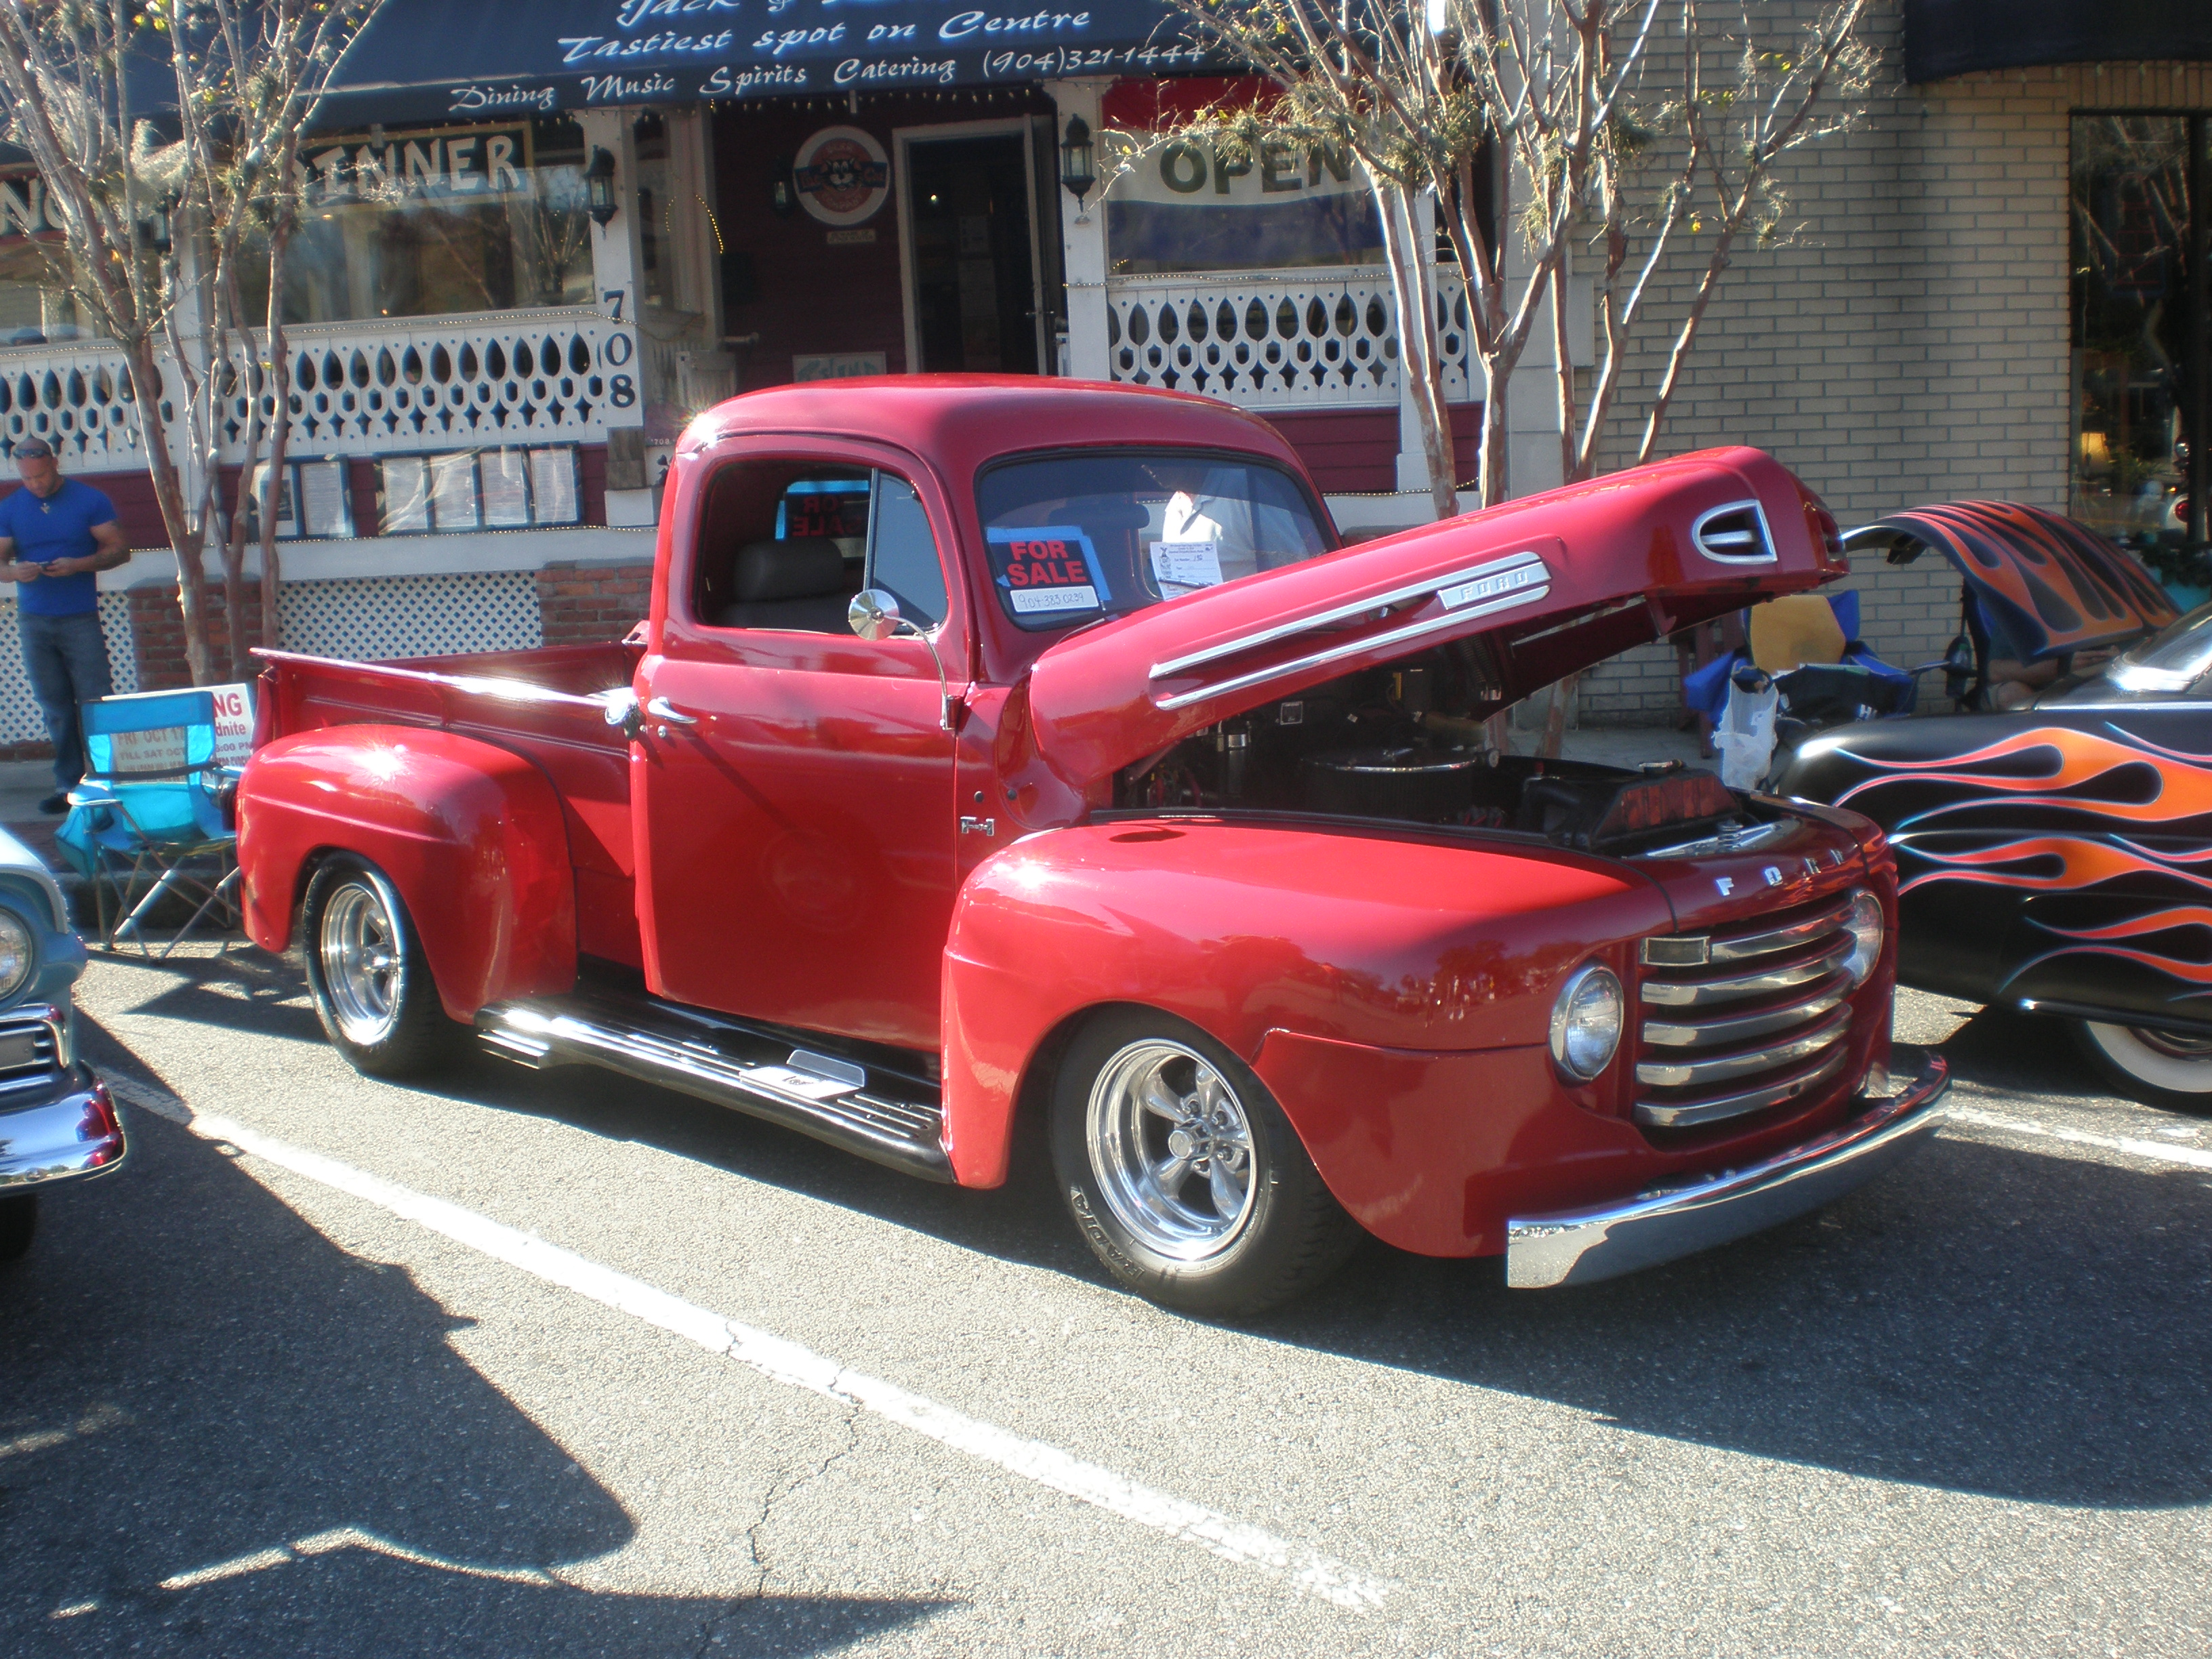 2014 18th Annual Amelia Cruizers 8-Flags Car Show